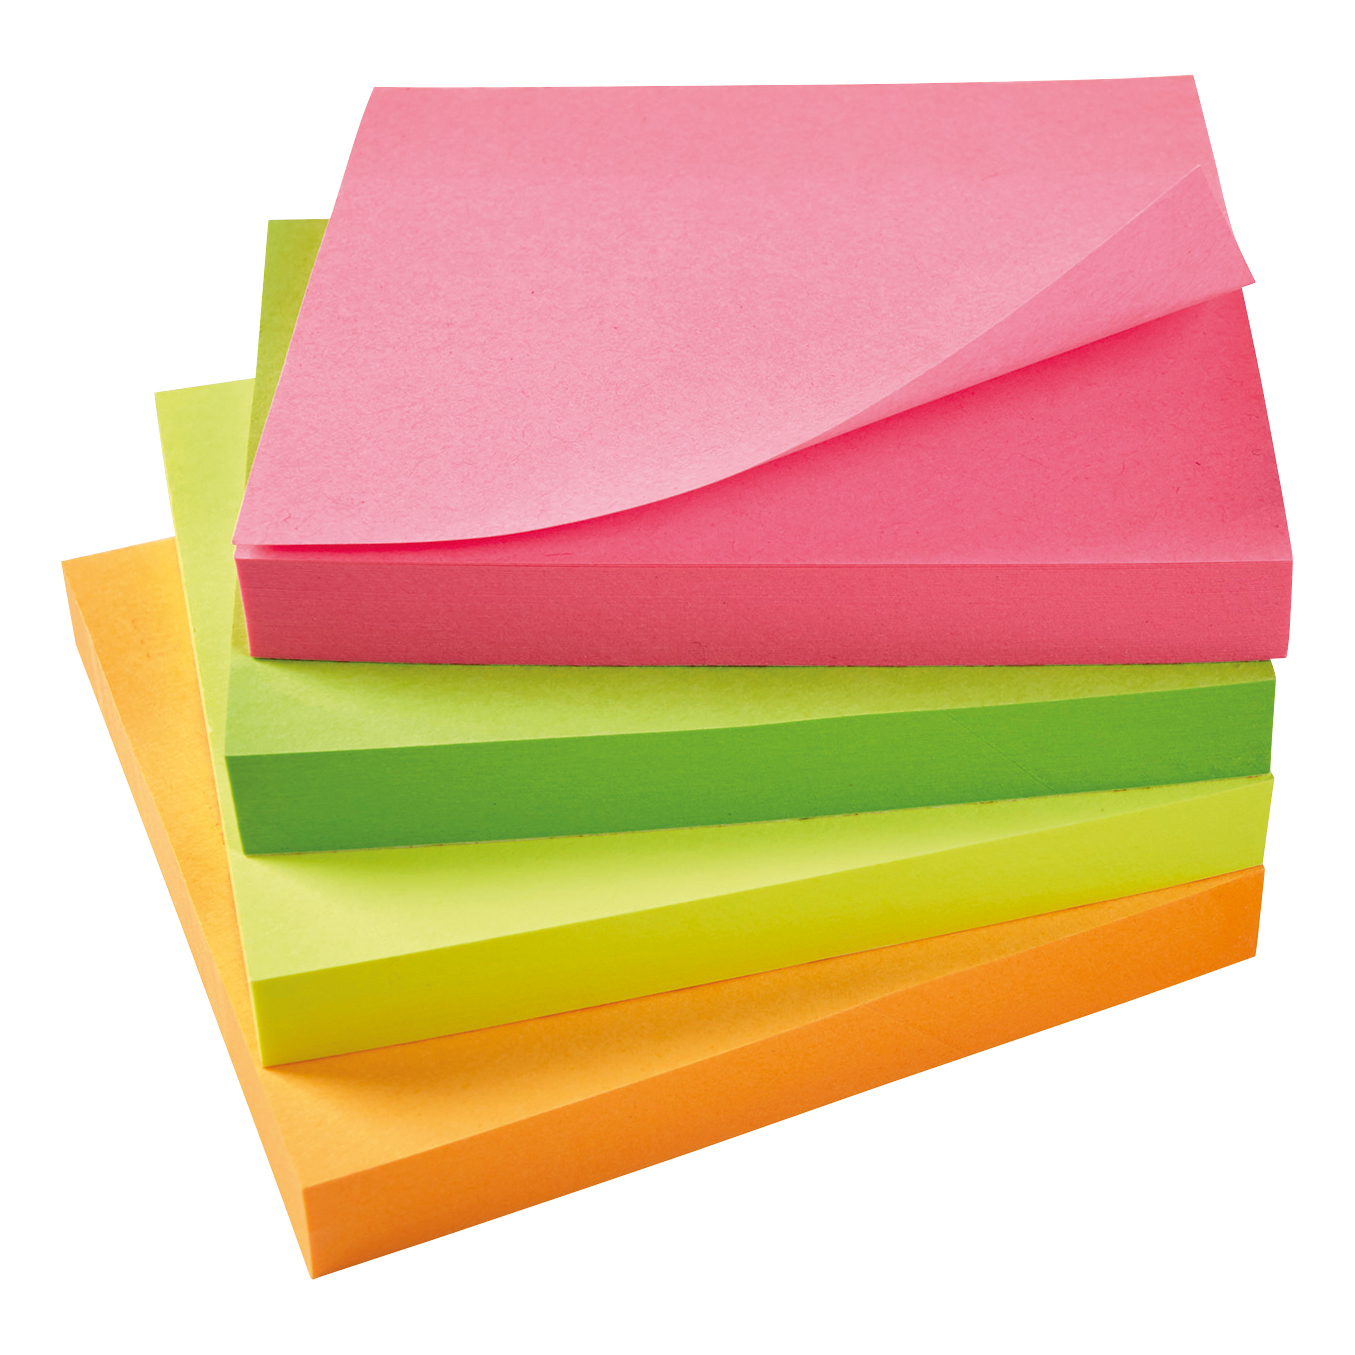 Coloured 5 Star Office Re-Move Notes Repositionable Neon Pad of 100 Sheets 76x76mm Assorted [Pack 12]